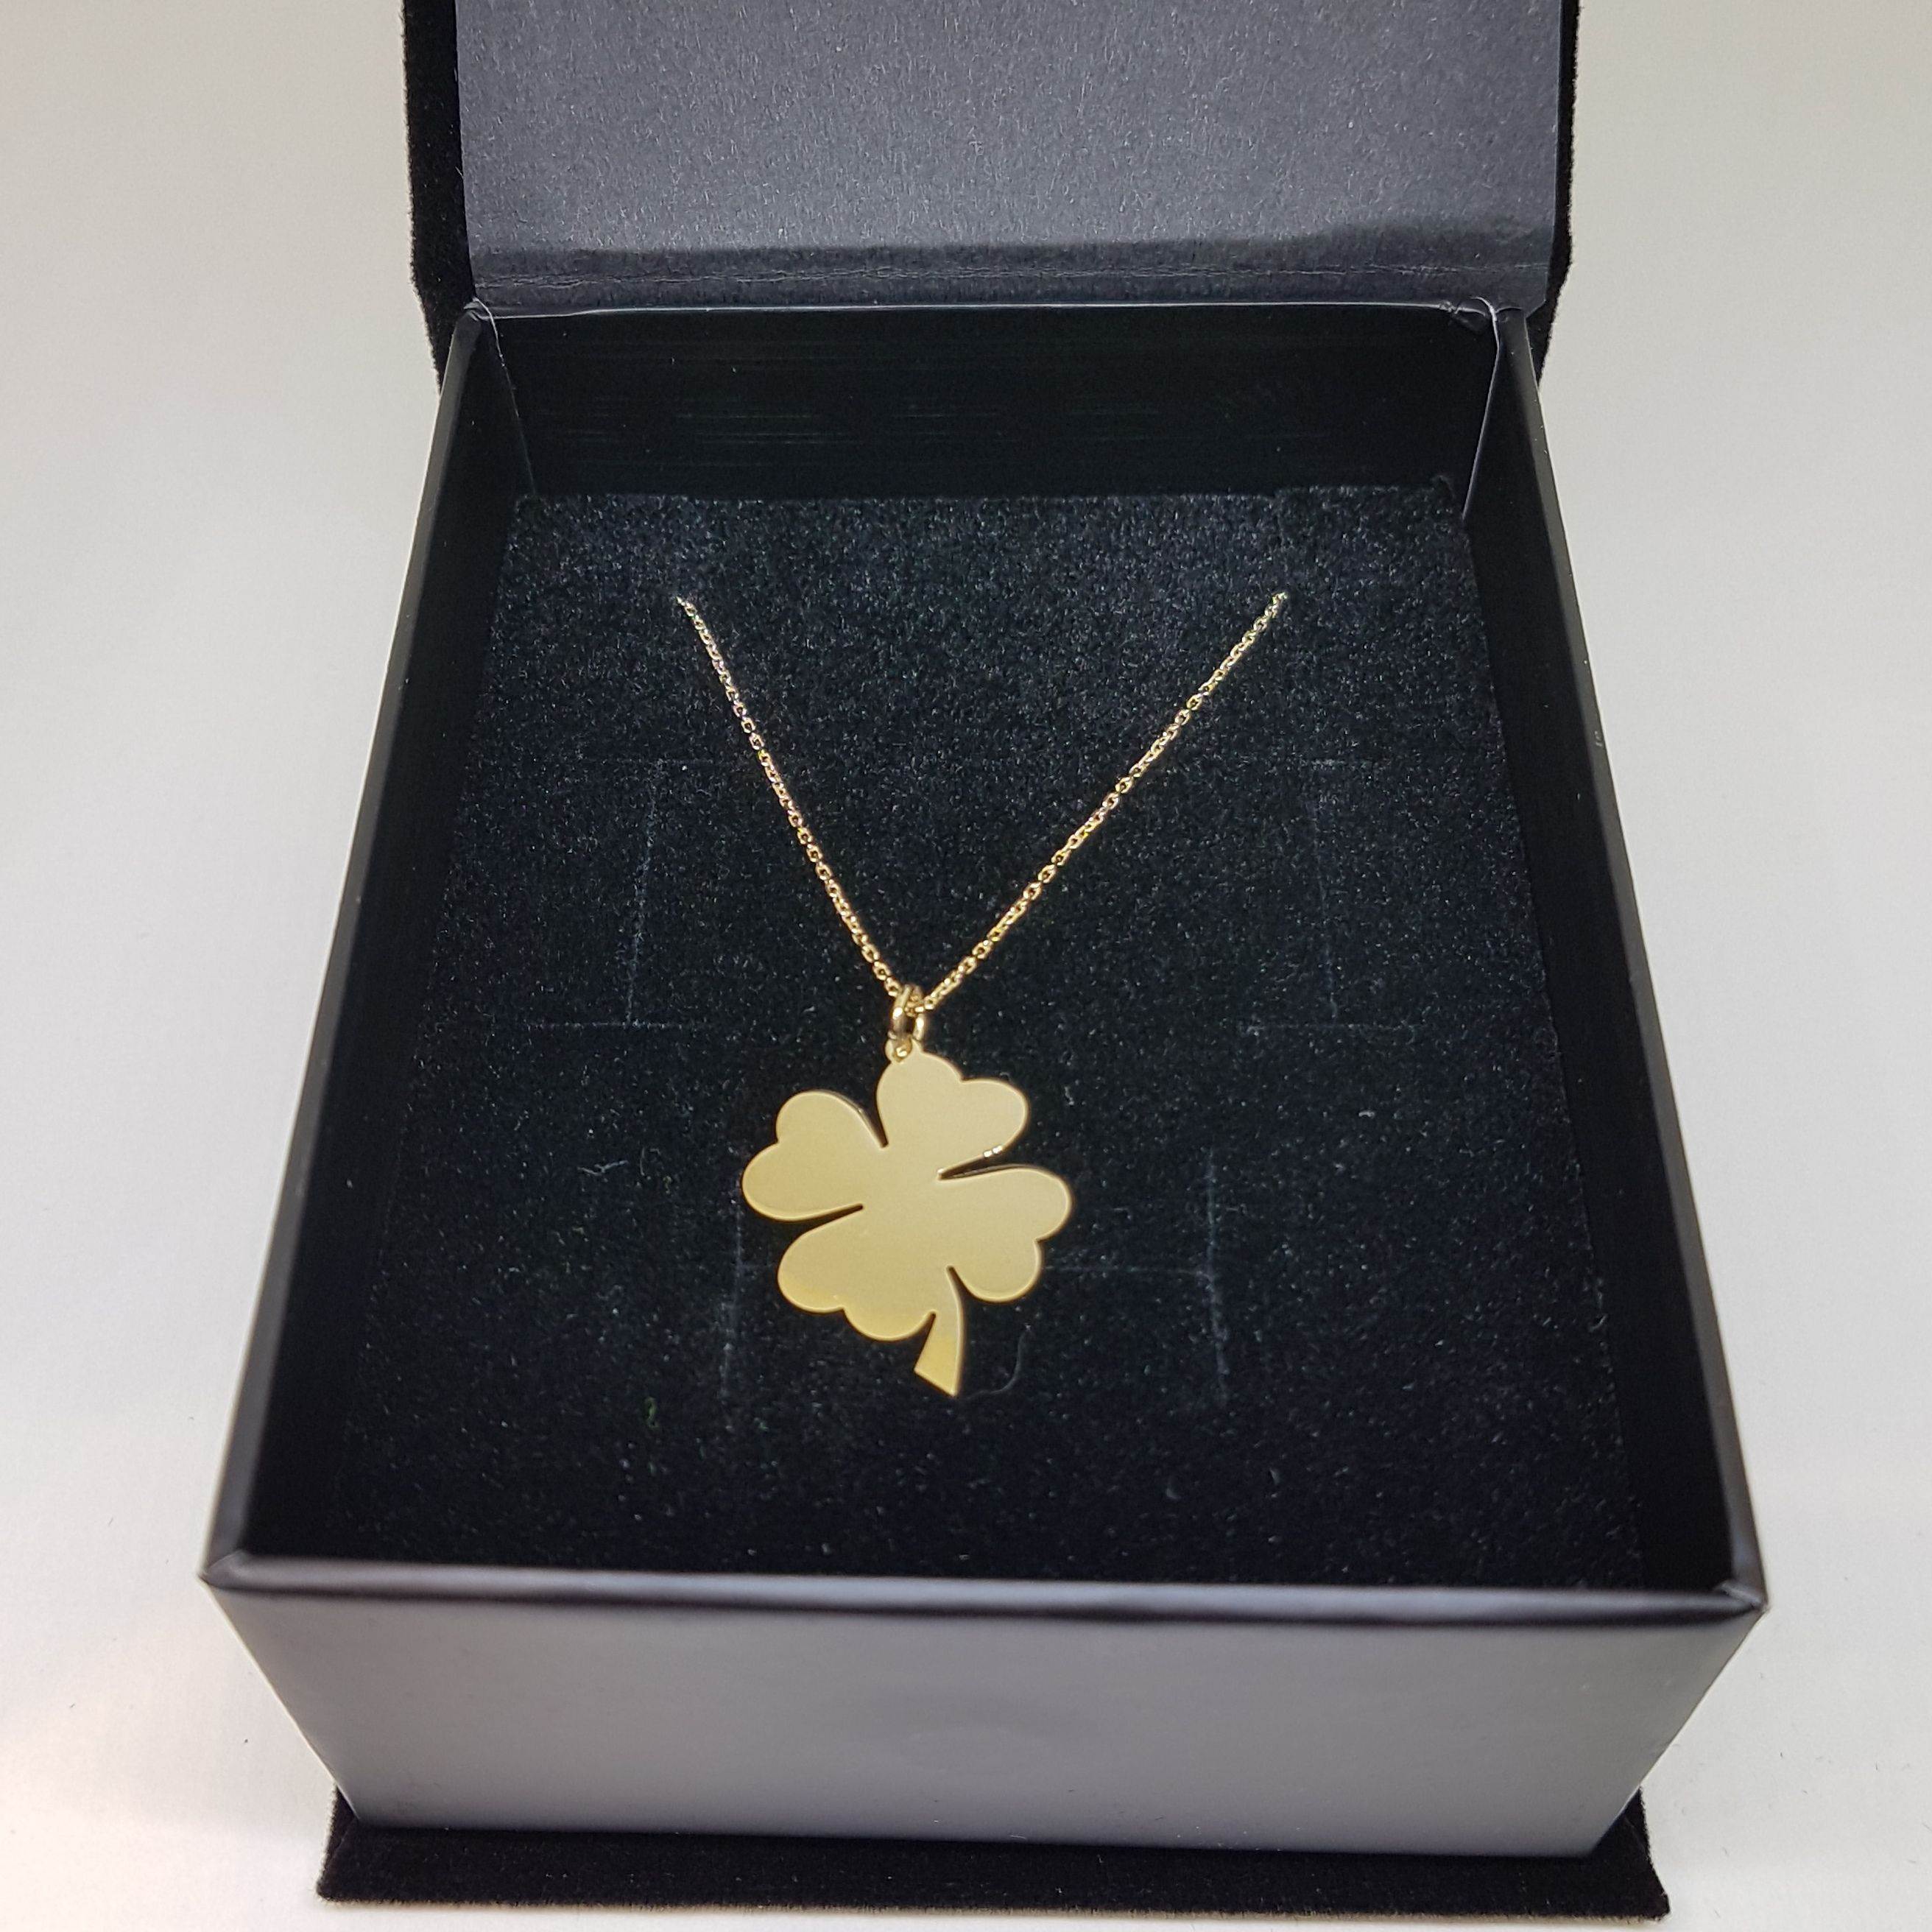 14k Gold Four Leaf Clover Charm Dainty Pendant Necklace For Etsy Clover Jewelry Trendy Pendant Necklace Dainty Pendant Necklace